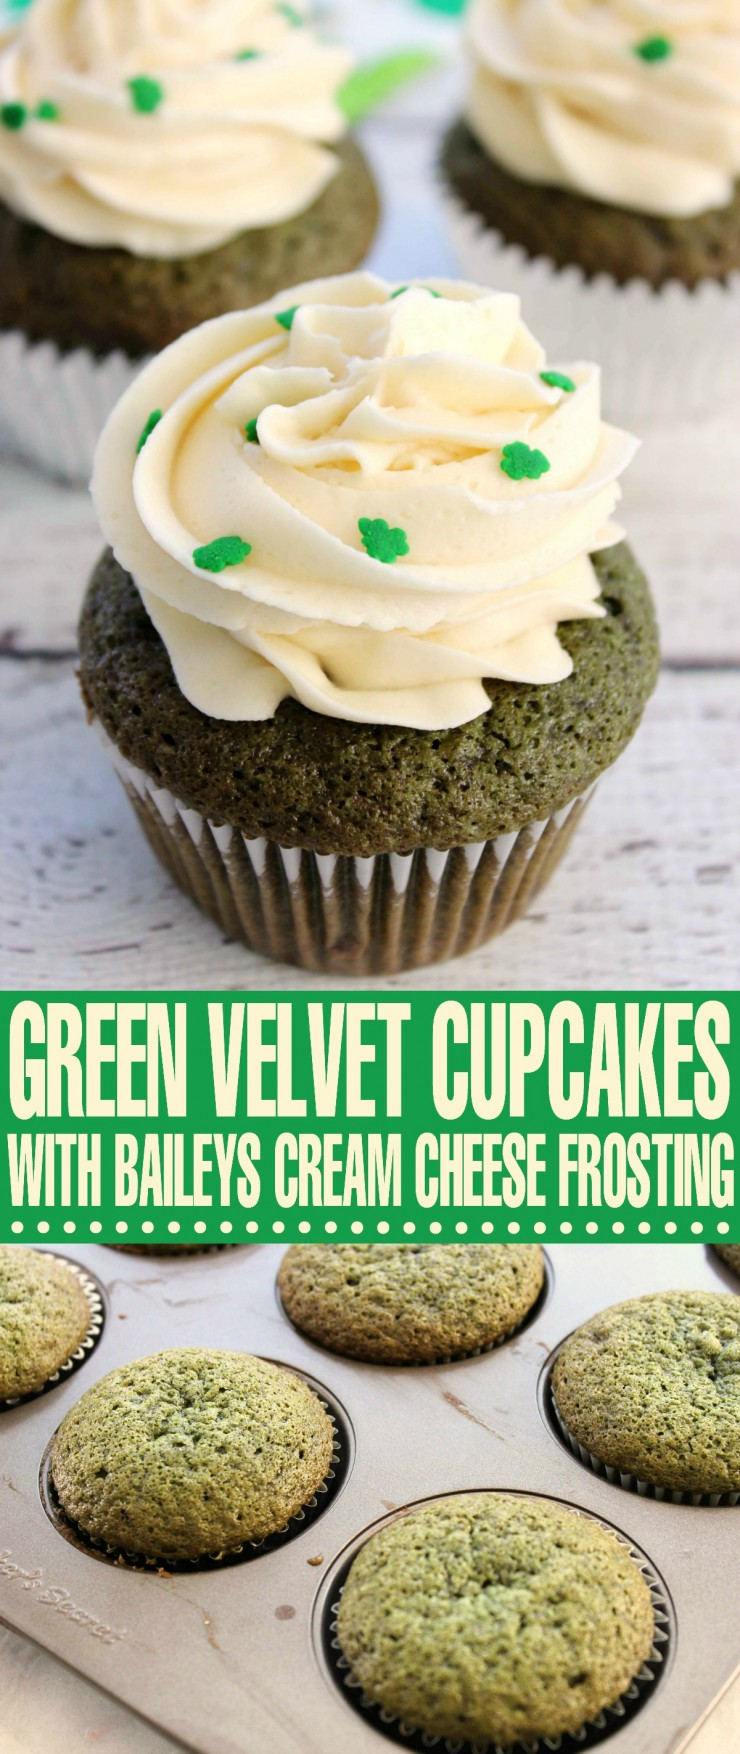 These Green Velvet Cupcakes with Baileys Cream Cheese Frosting Recipe are a perfect St. Patrick's Day Dessert!  These are one of my most favourite cupcakes and they are so festive looking too!